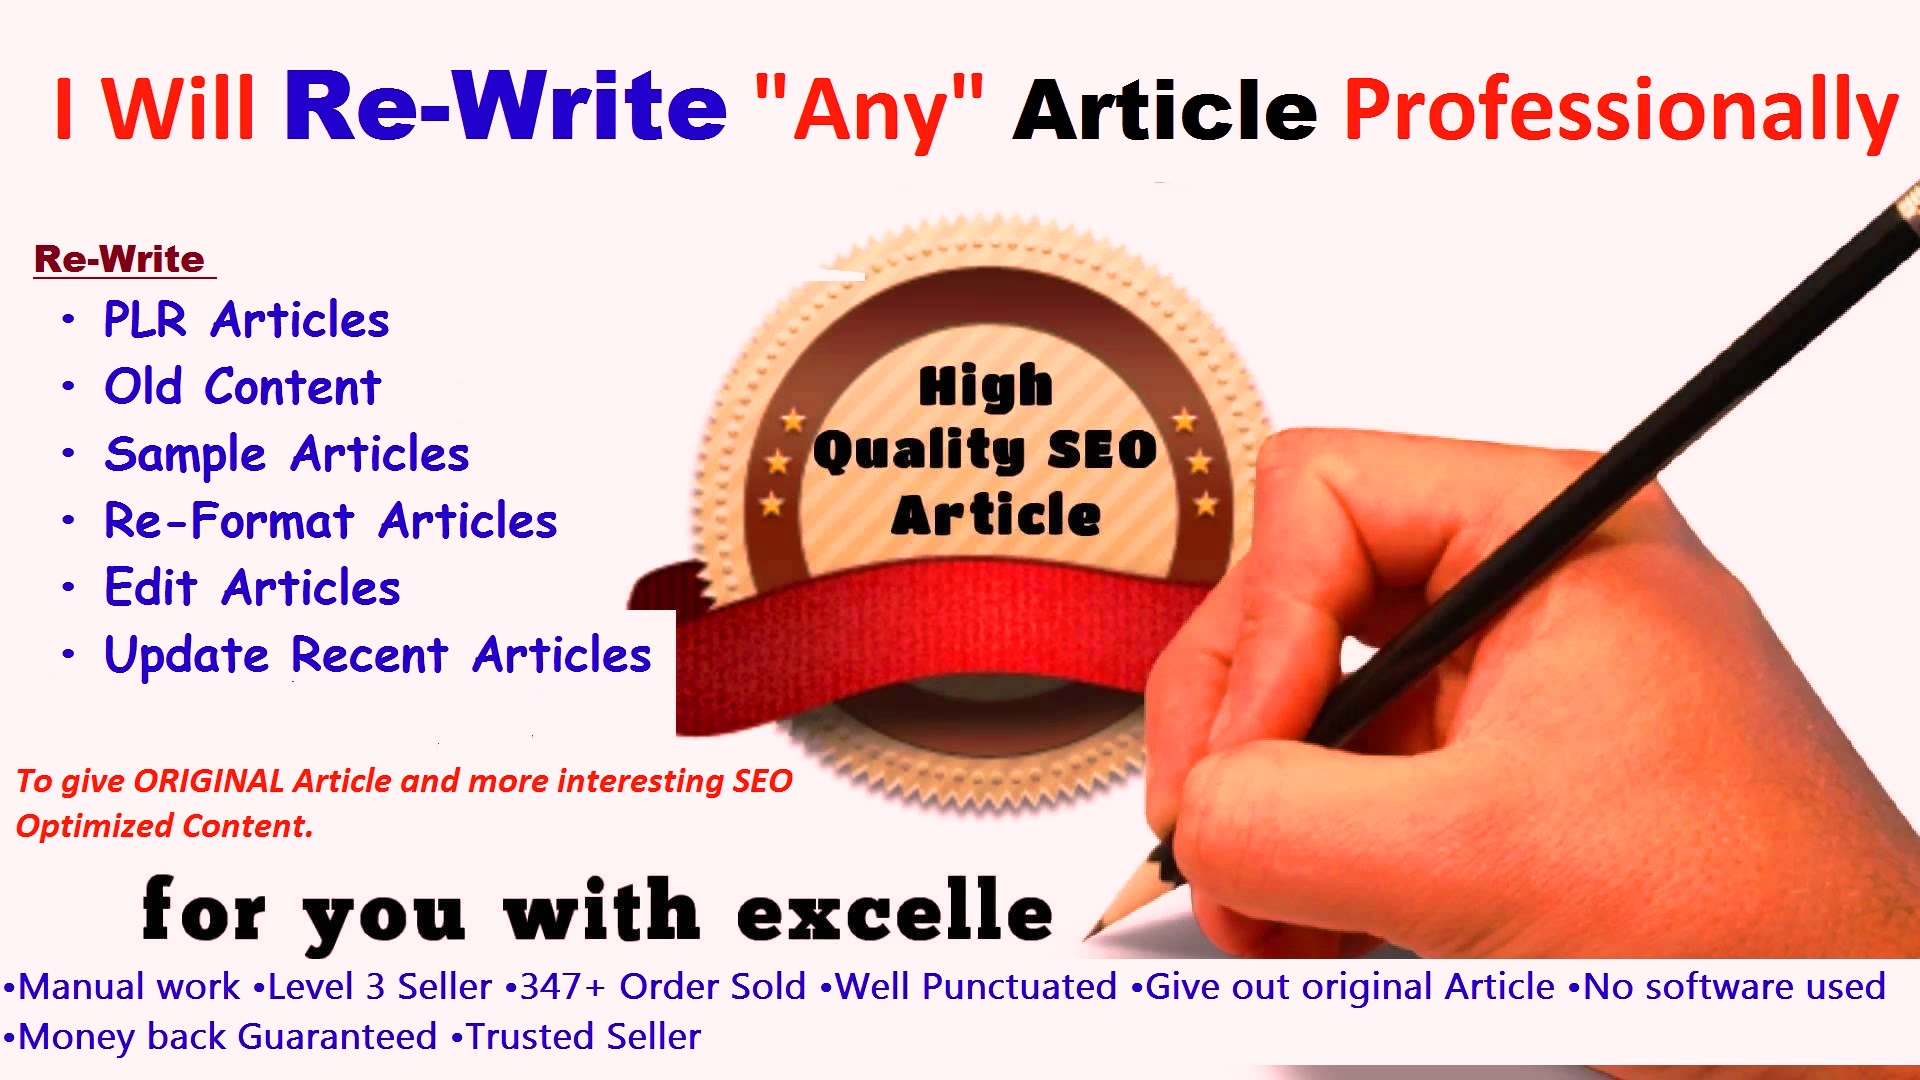 Professionally Re-Write PLR or Any Articles To give ORIGINAL Quality Article and SEO Optimized Contents BONUS included